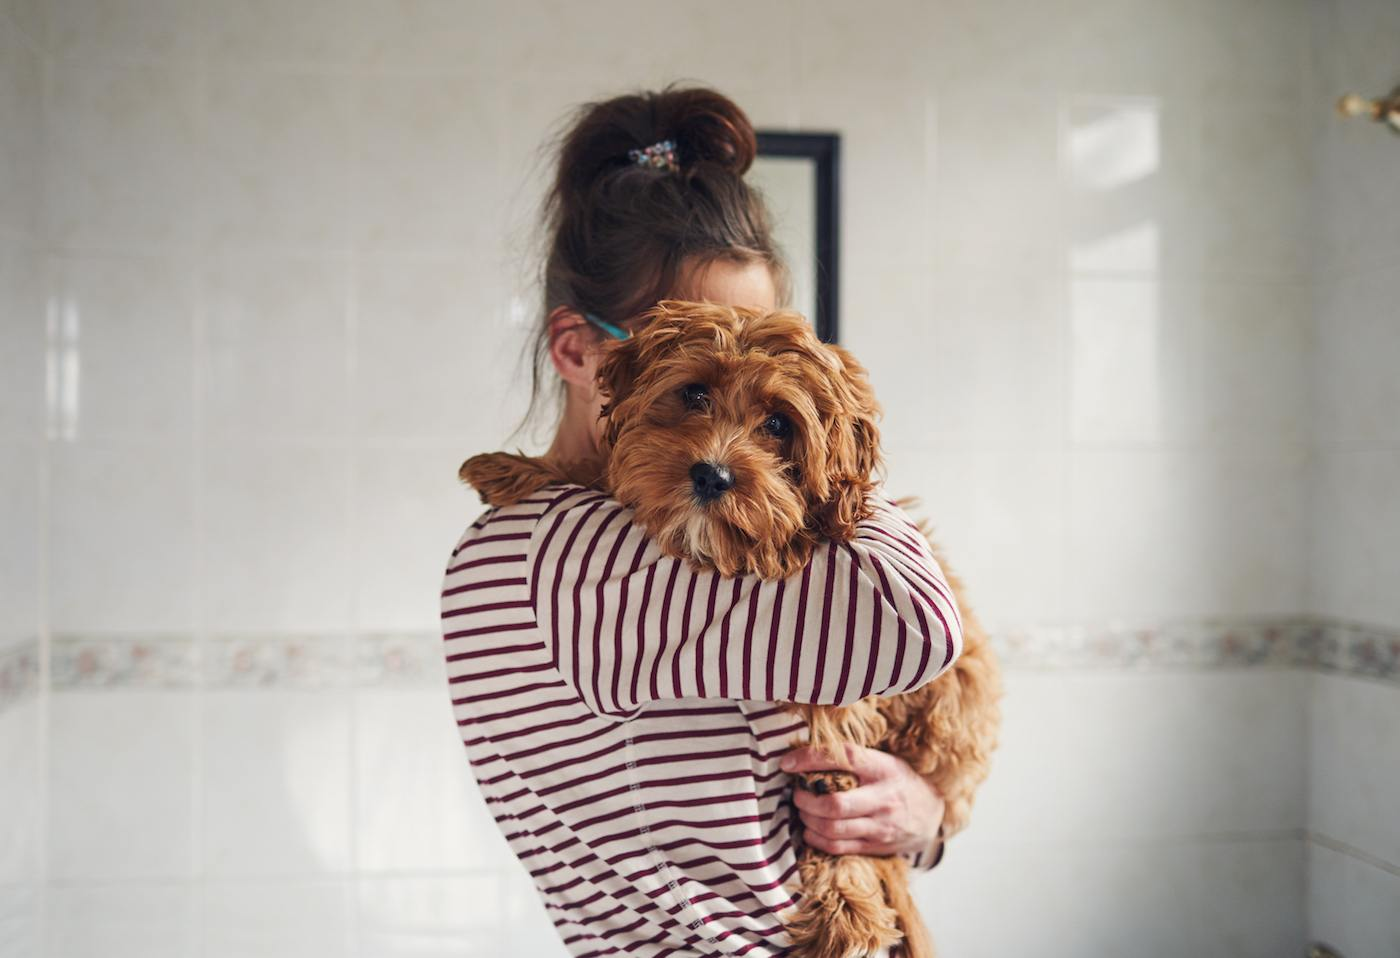 Thumbnail for Losing a pet in a breakup is the hardest part of splitting no one talks about—here are tips to deal